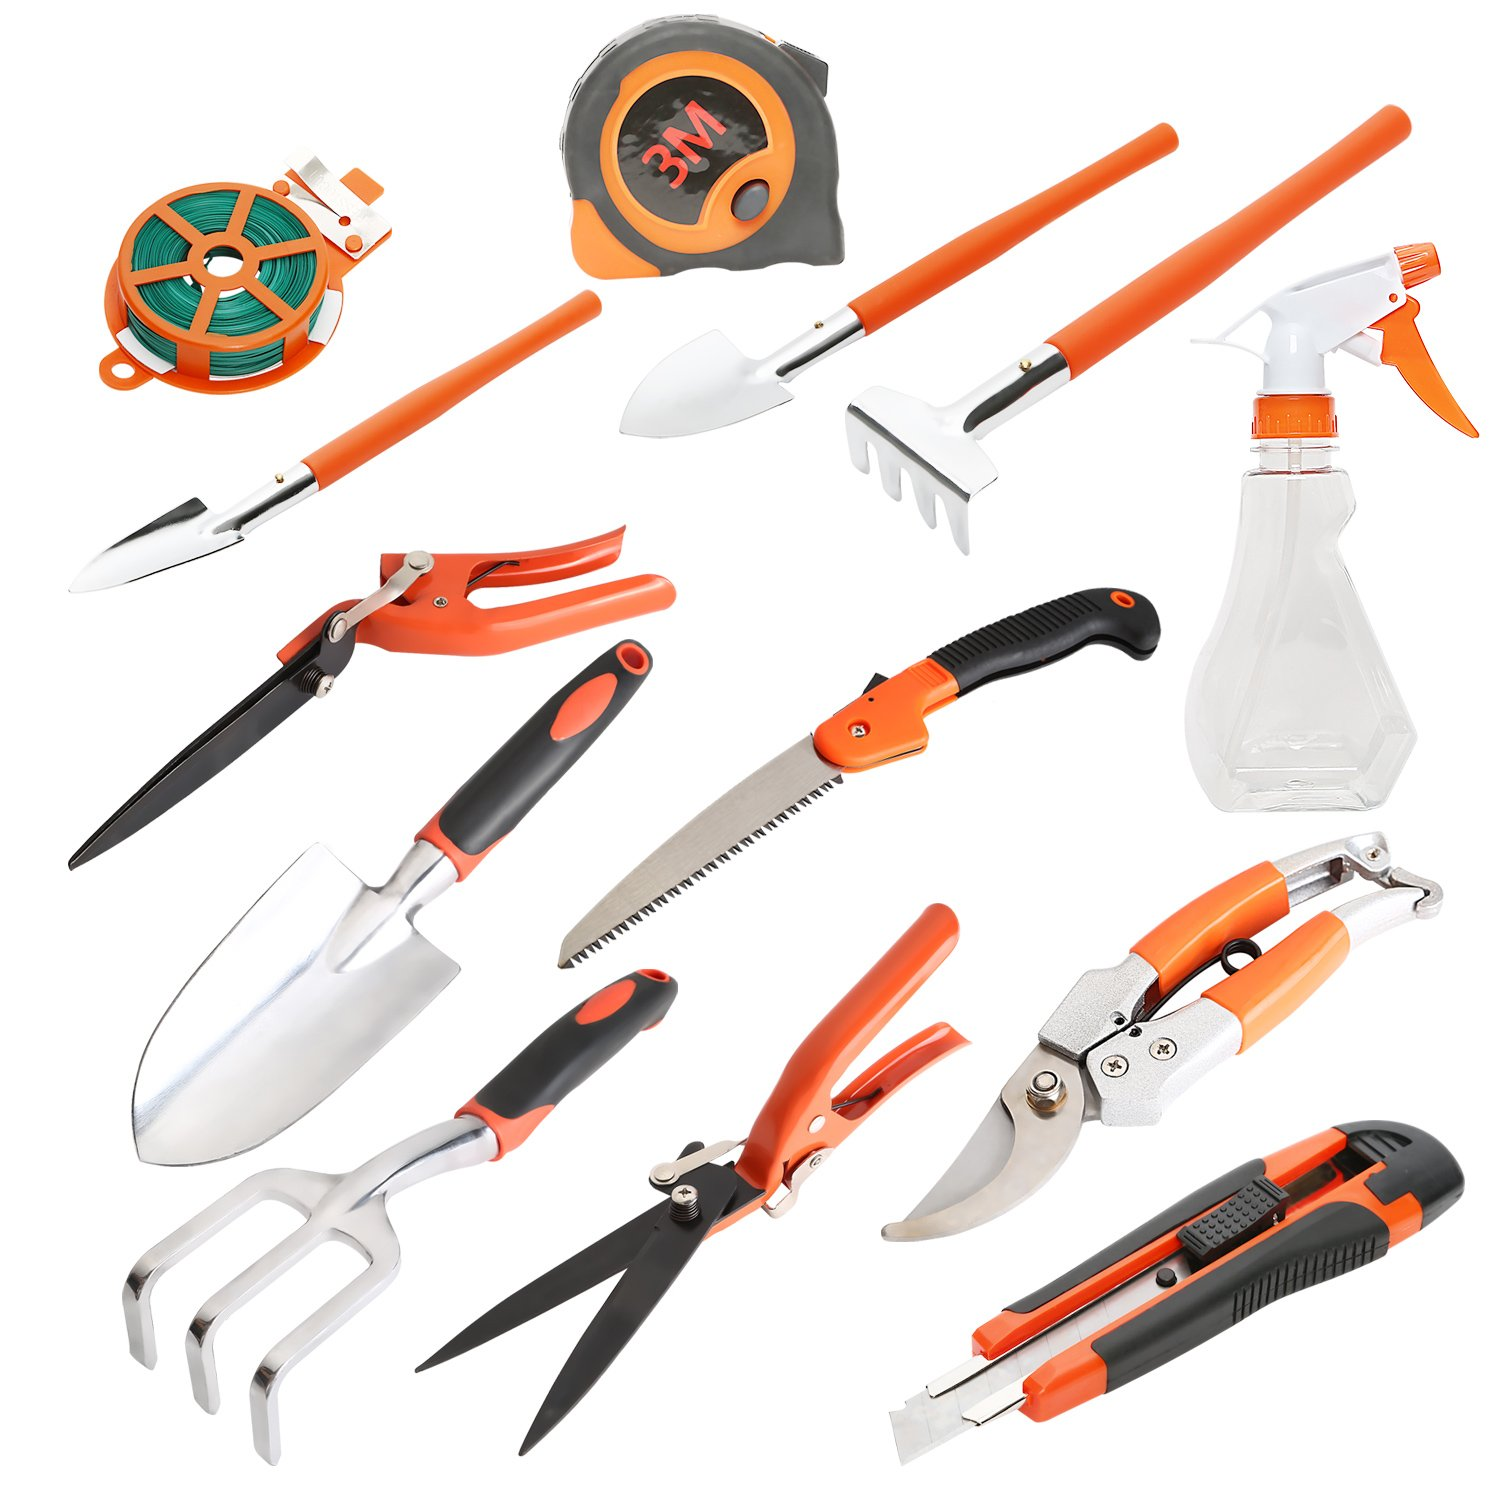 LESOLEIL 12Pcs Garden Hand Tool Set With Secateurs, Pruning Saw, Trowel Pruners by LESOLEIL (Image #2)